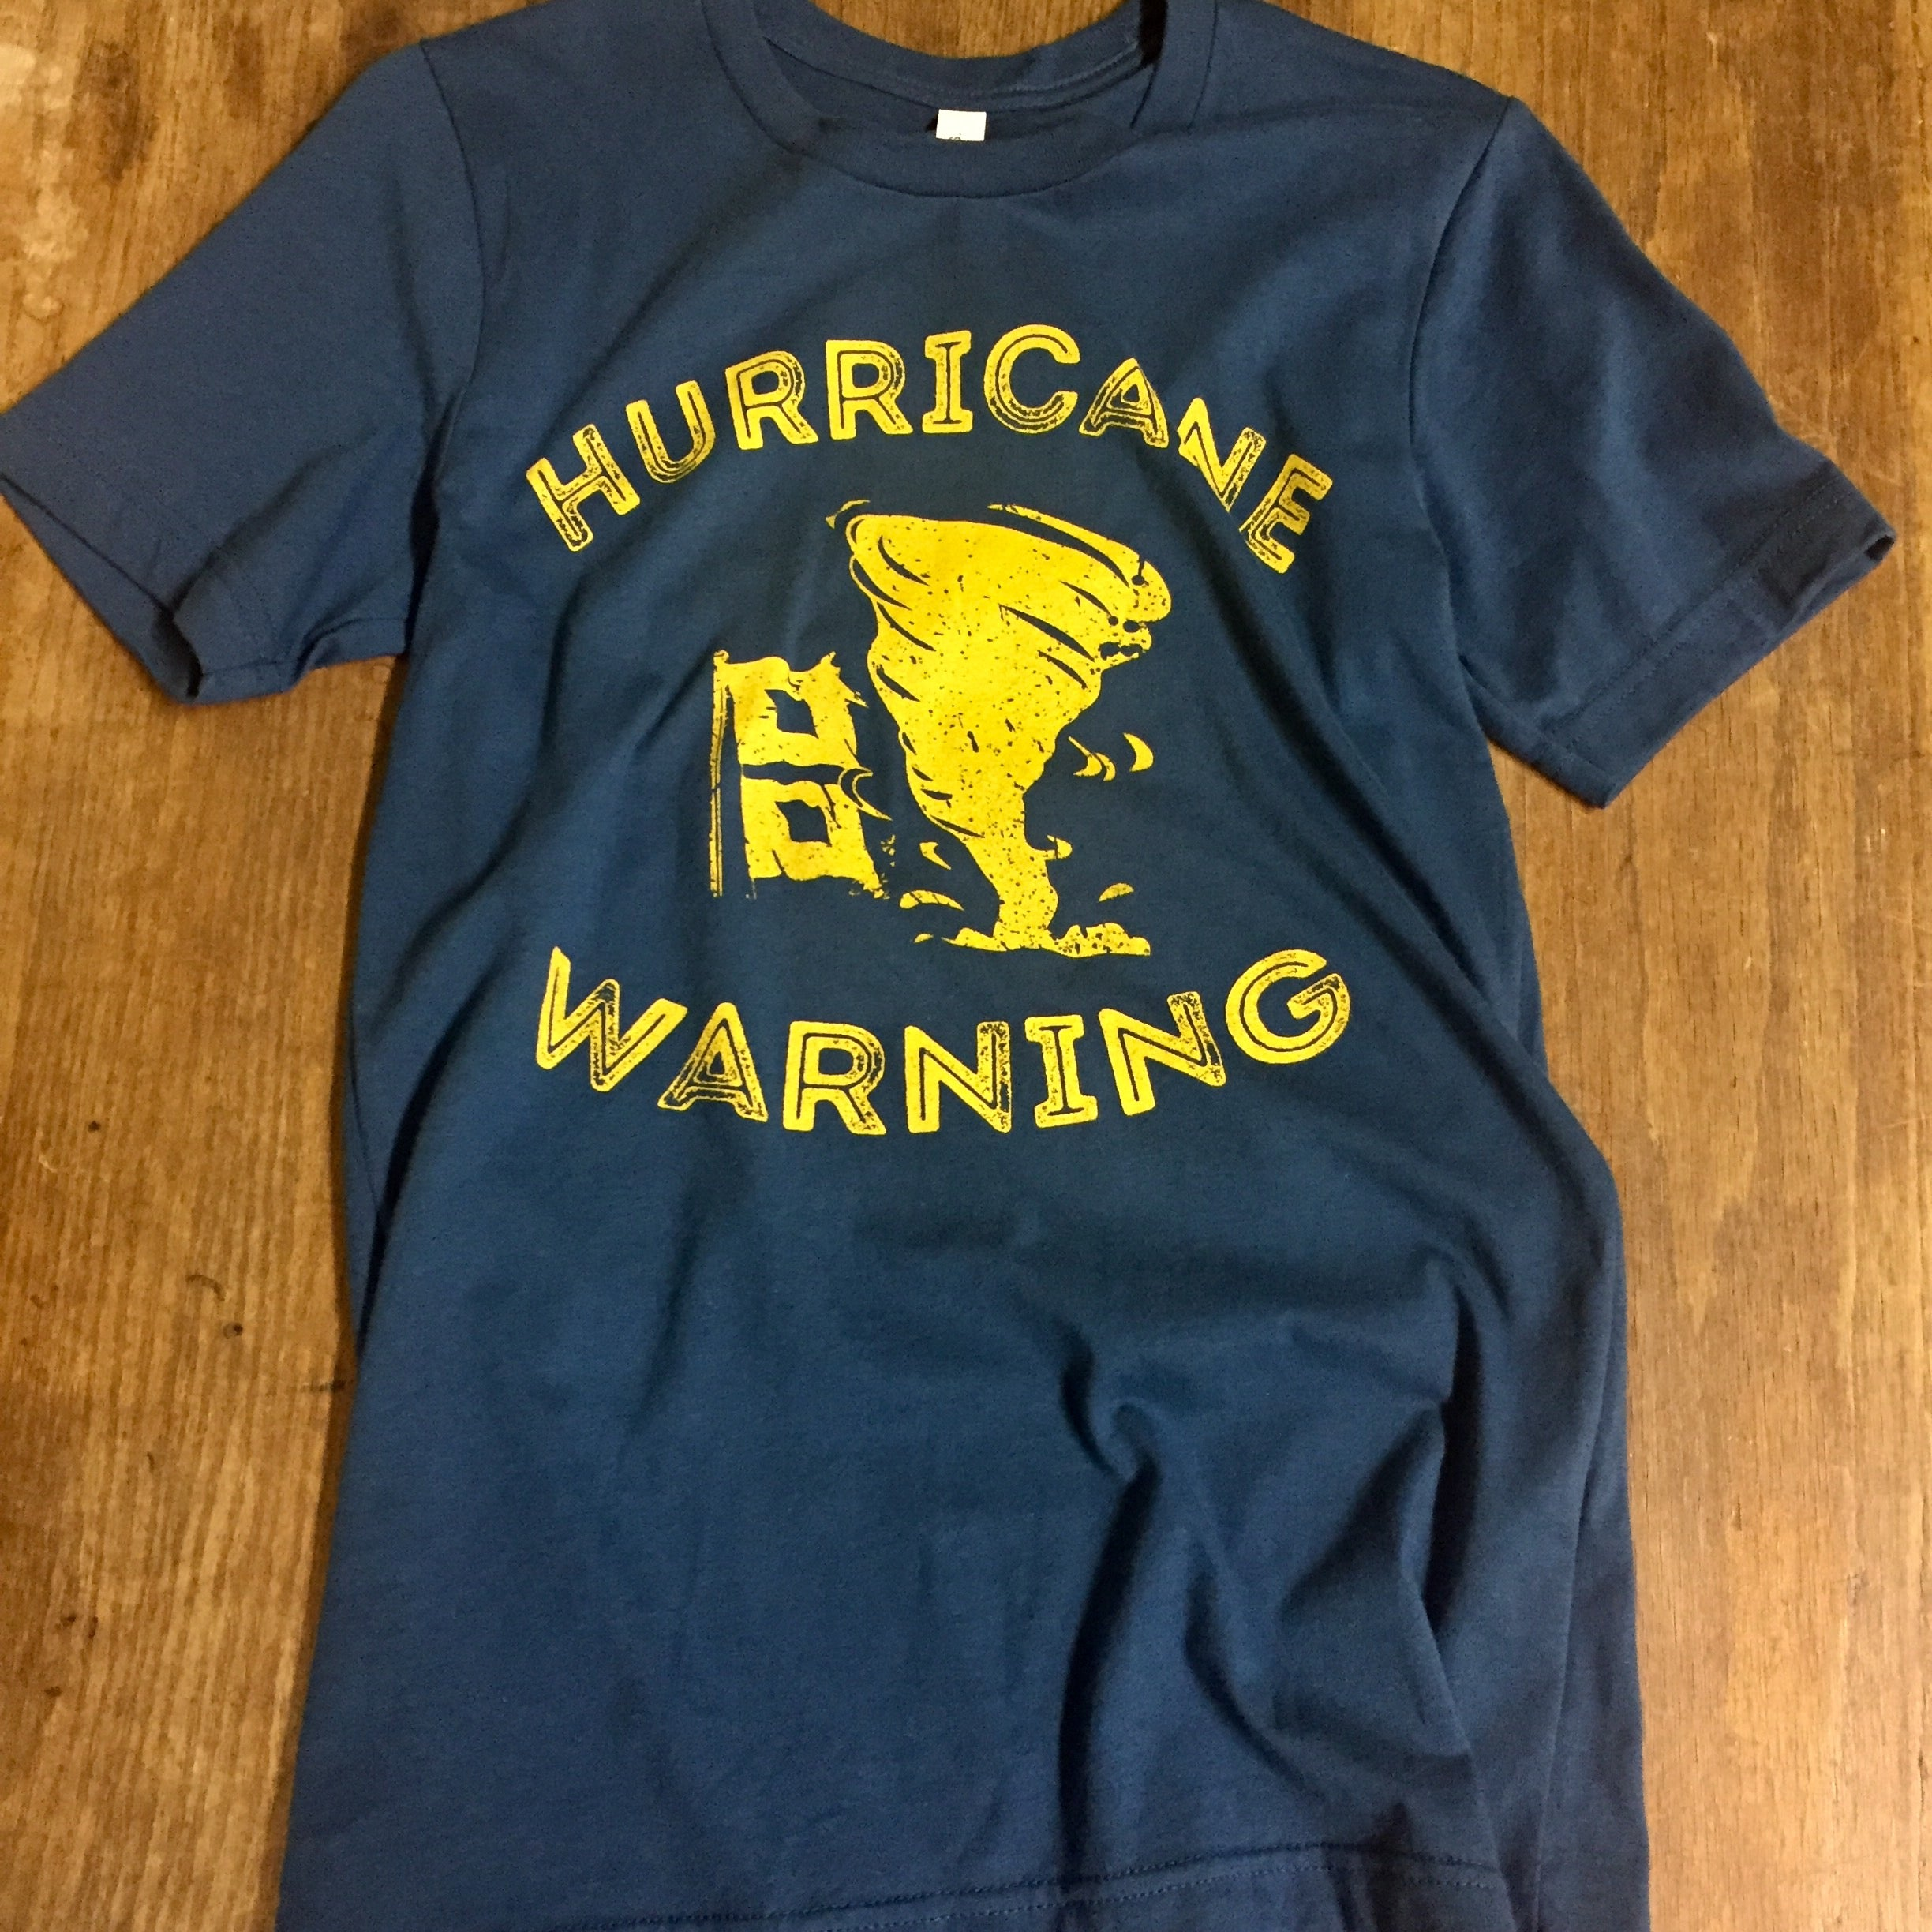 Hurricane Warning Tee